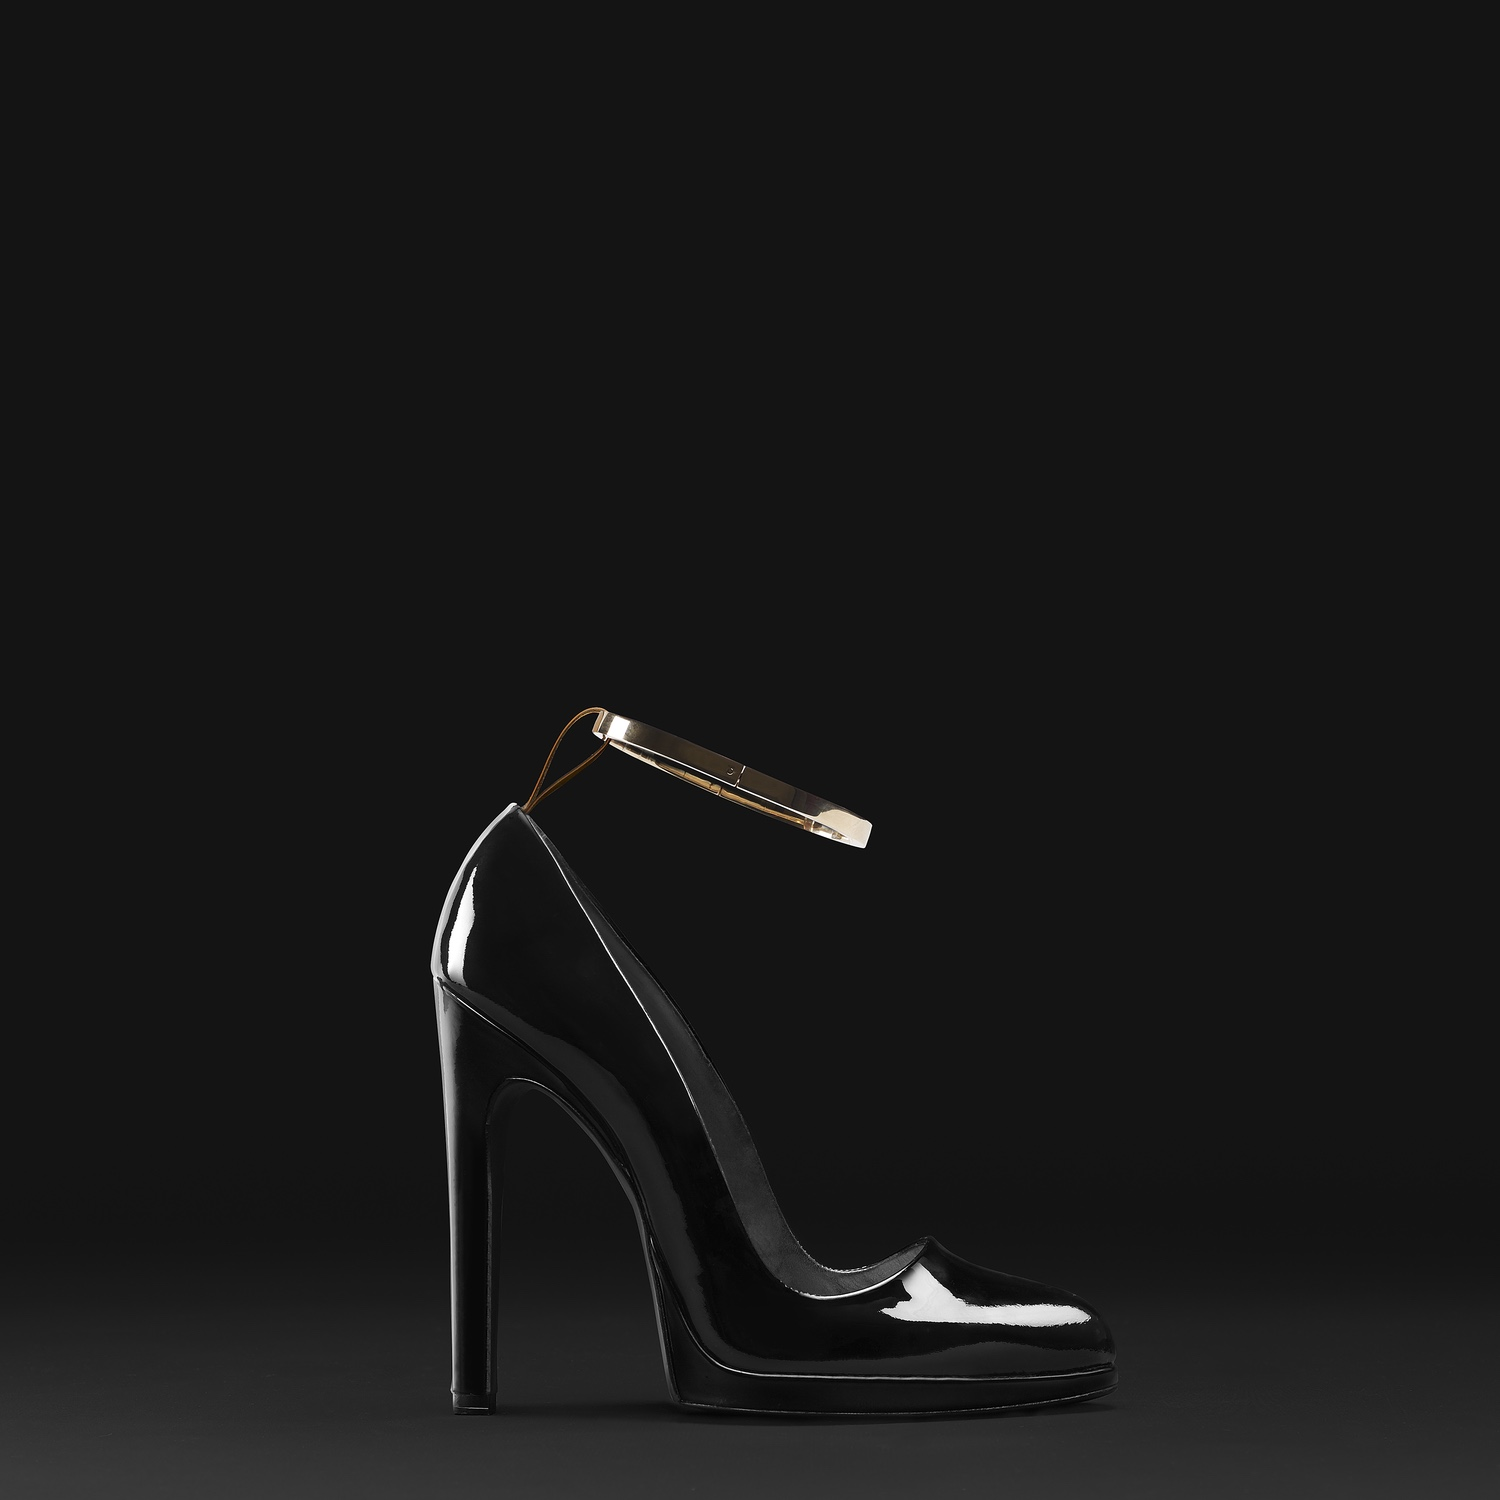 ALAINTONDOWSKI_FALLWINTER2015_SHOES_AT0059-B